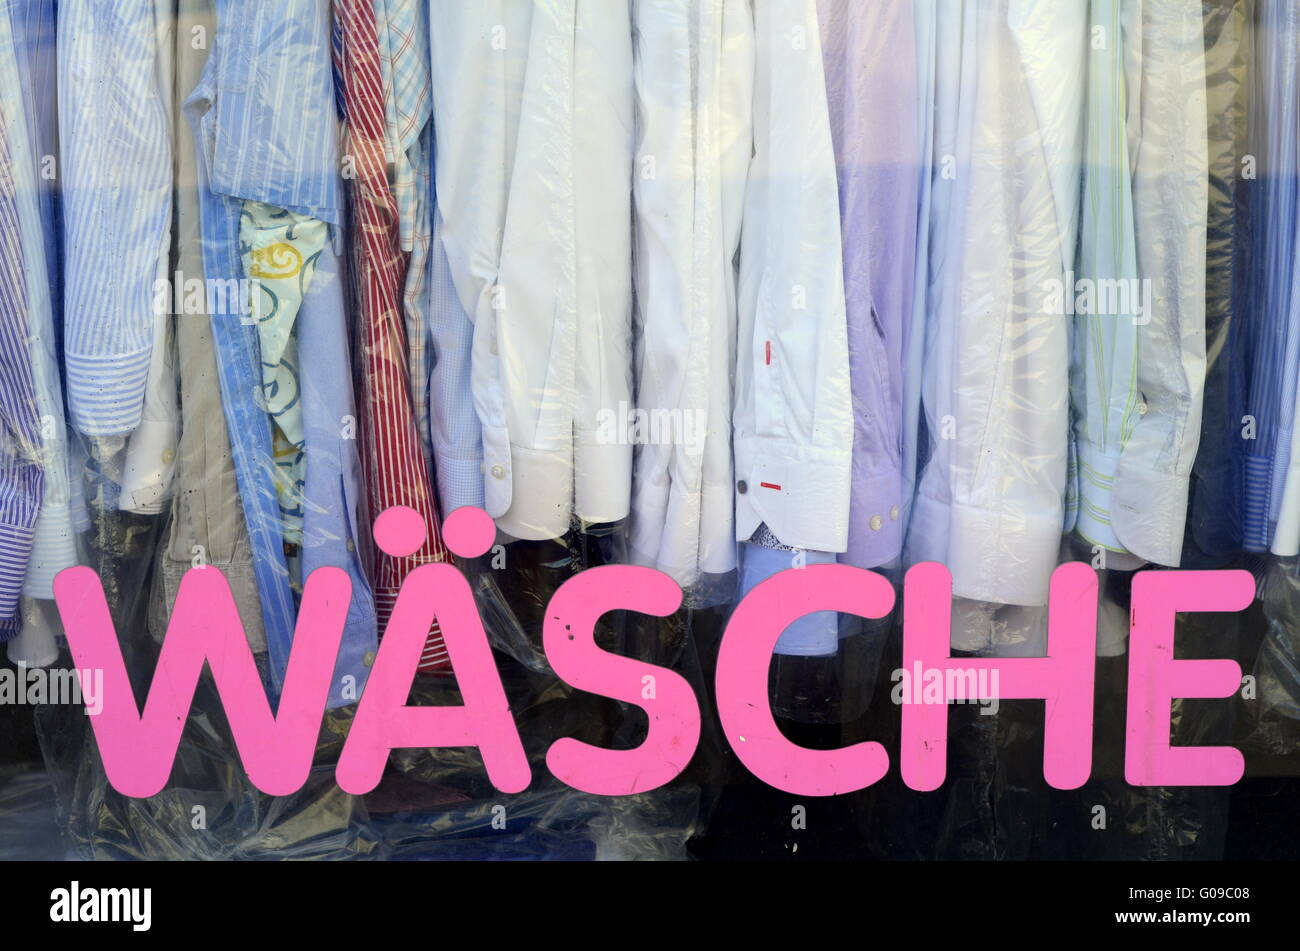 Sign And Shirts In The Window Of A Vintage German Laundromat Stock Photo